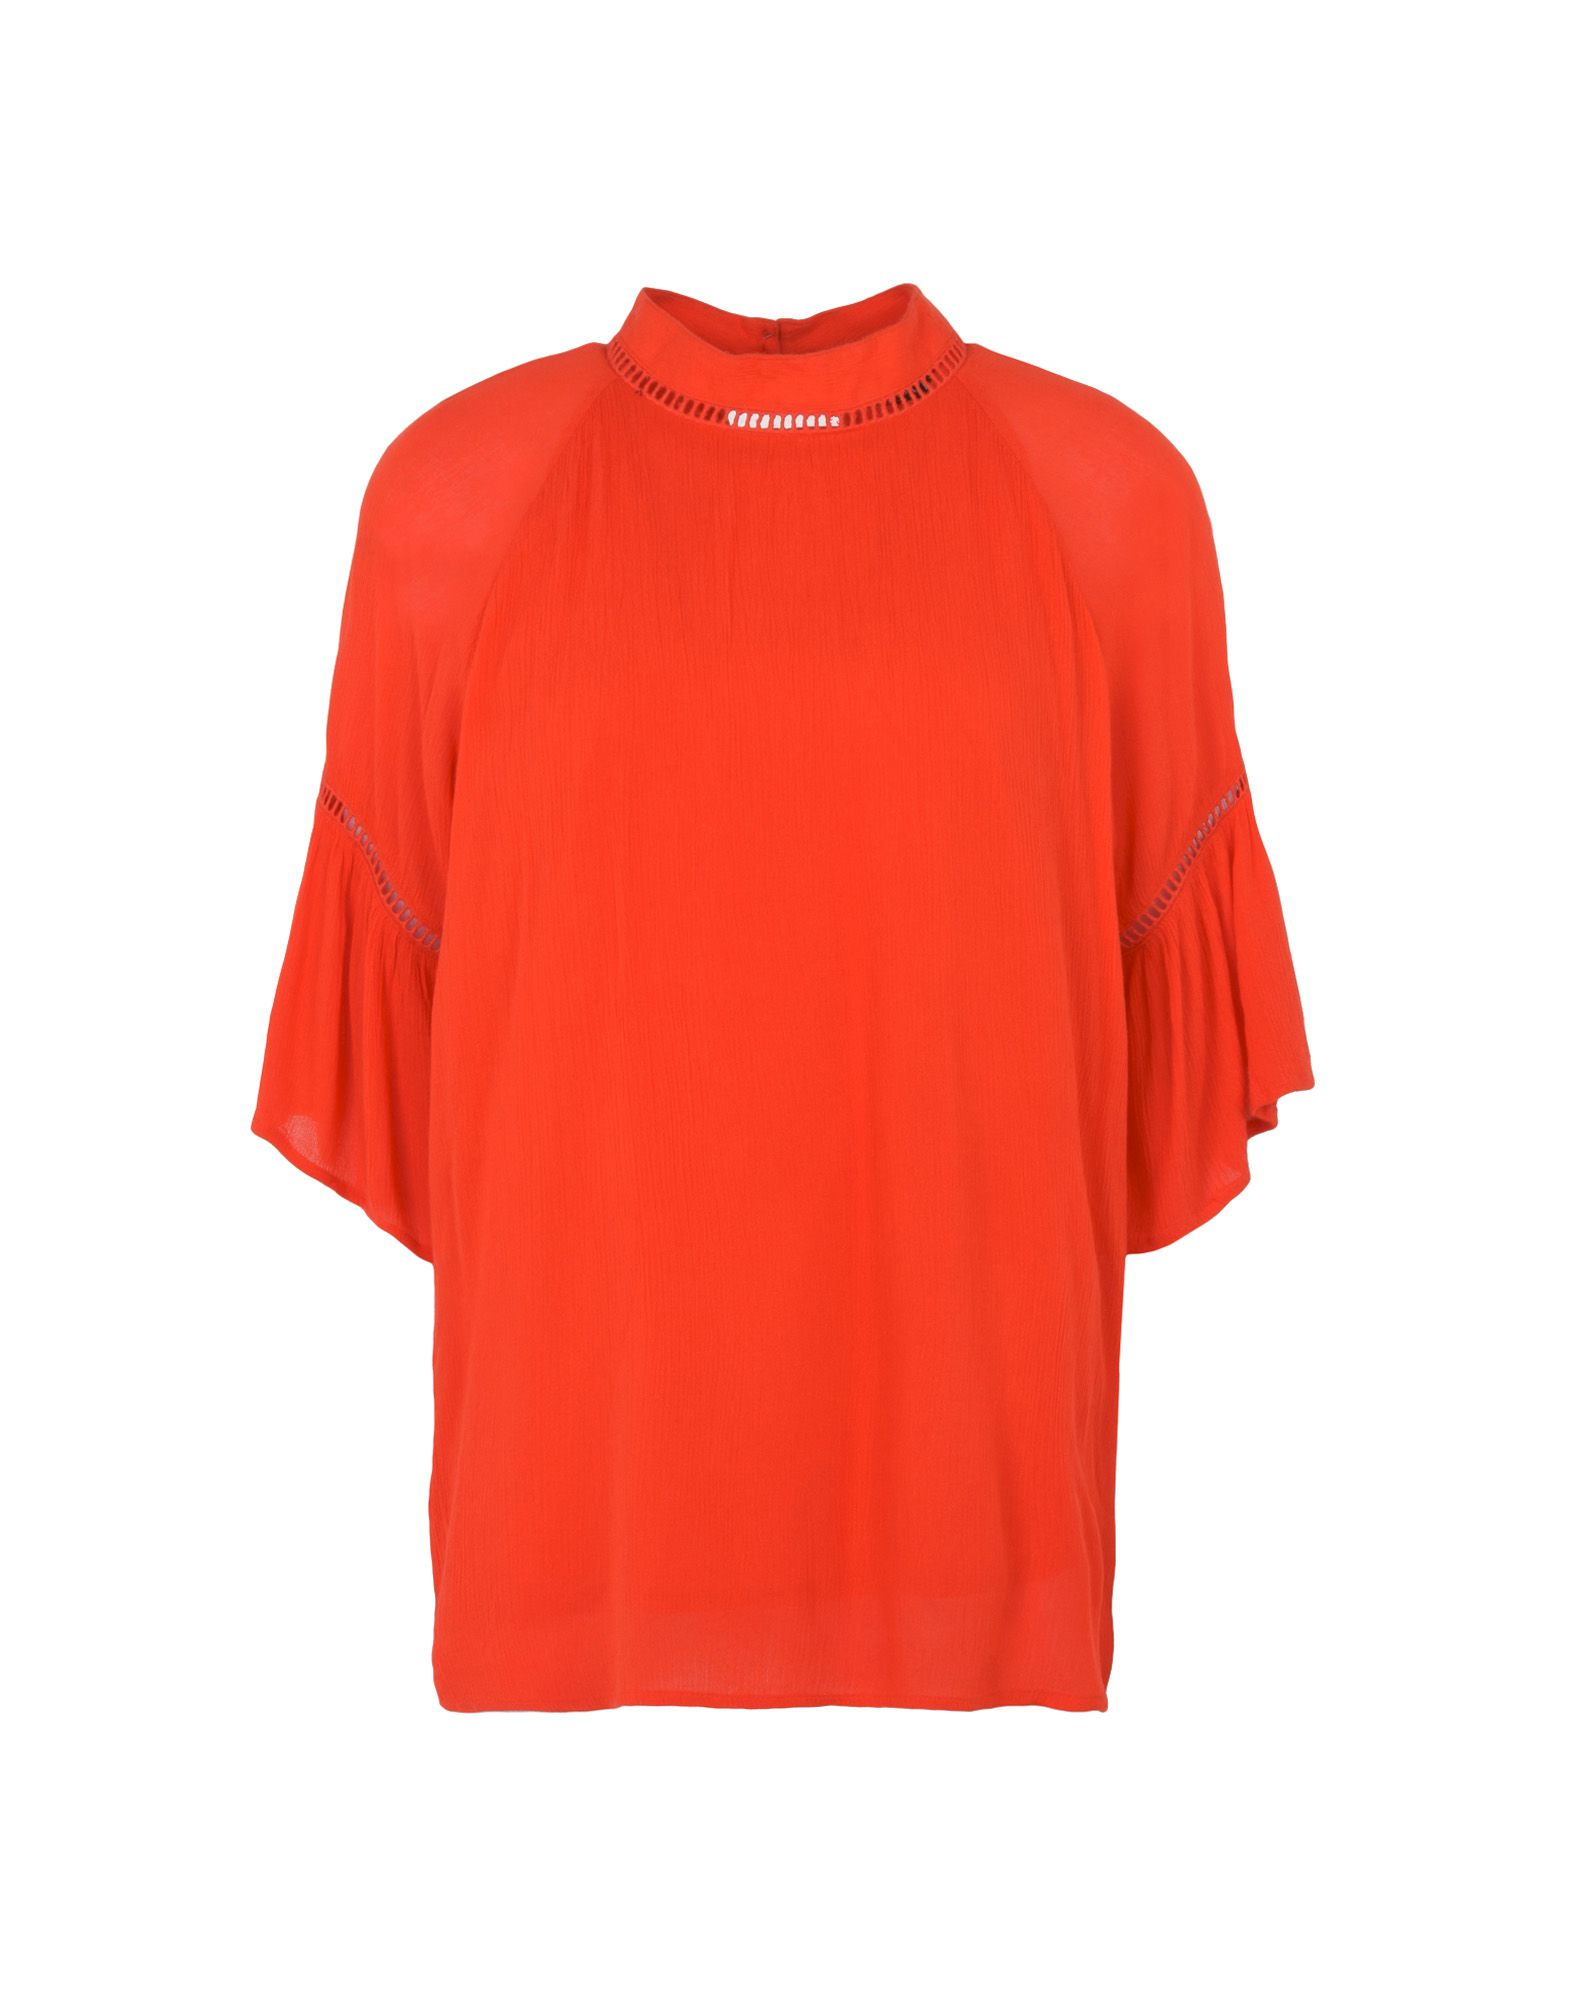 MBYM Blouse in Red